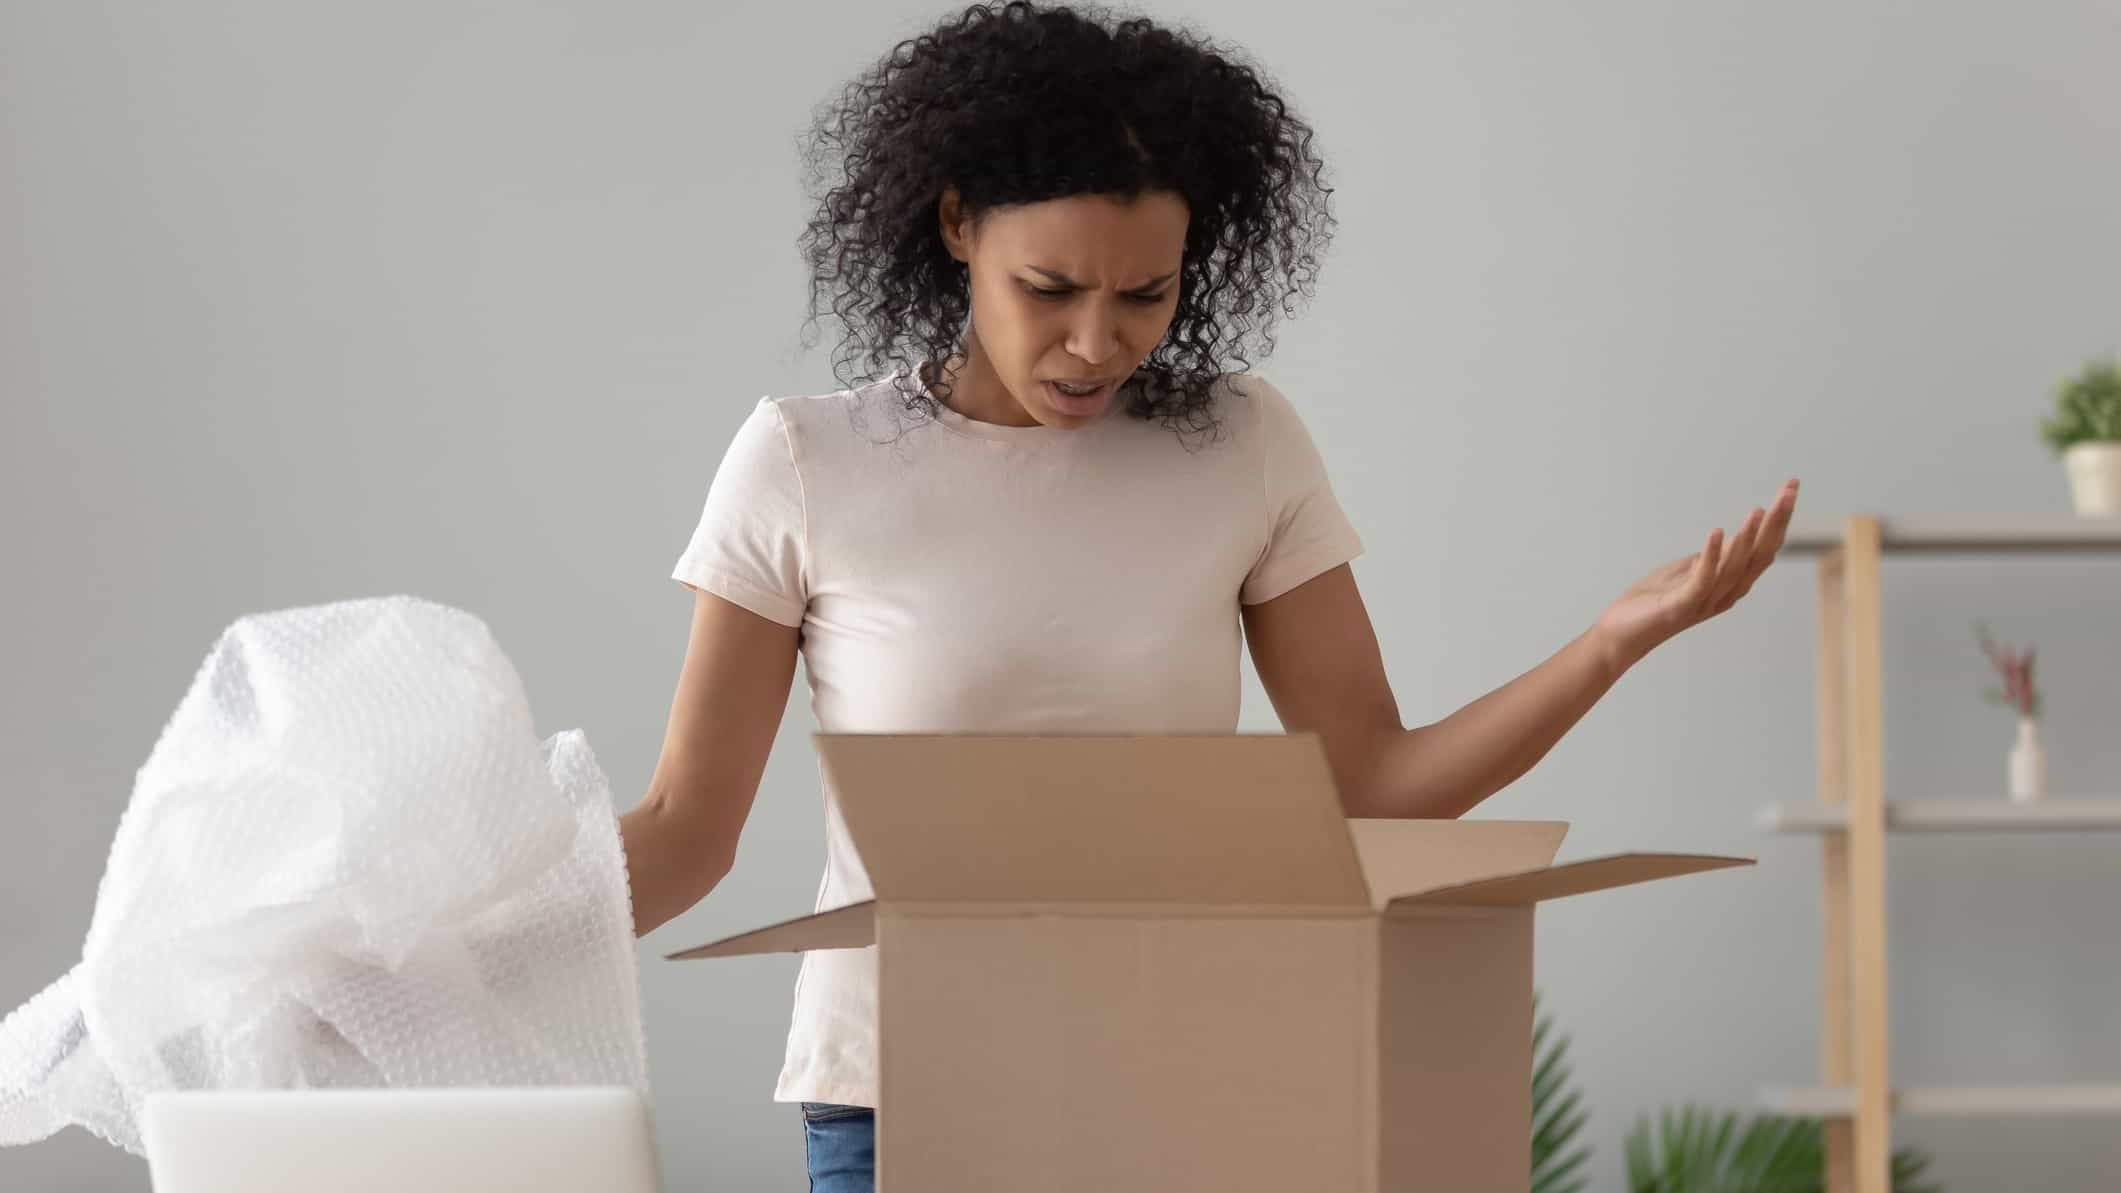 a woman looks disappointed with a package she has unpacked holding her arms up at a box with bubble wrap beside it.